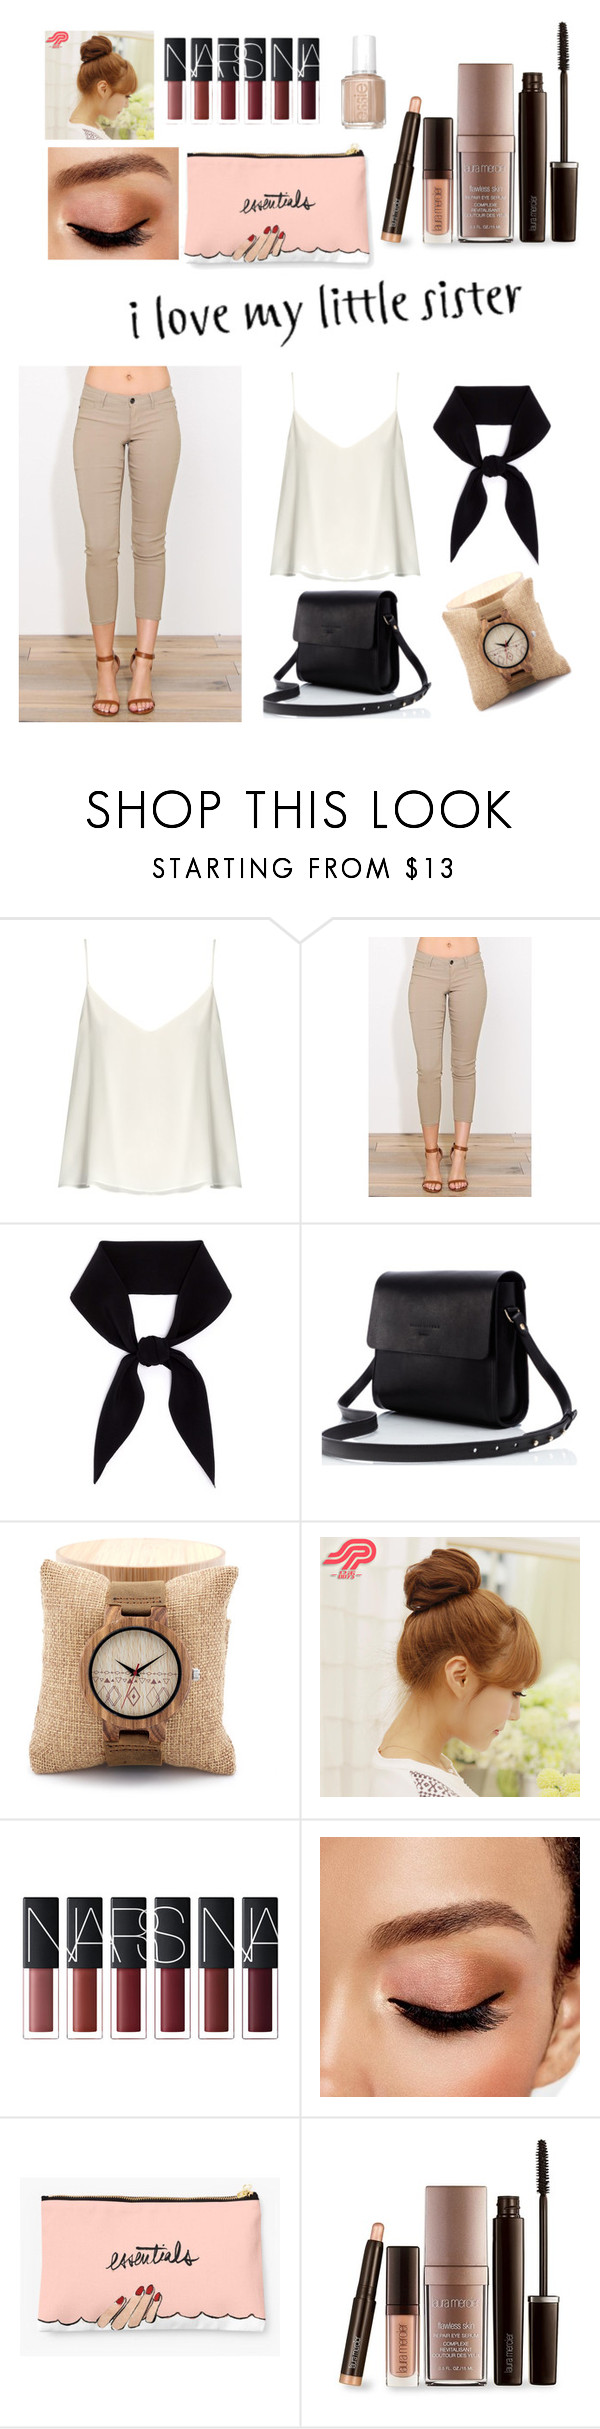 """""""for my lil sister"""" by novaerlyta ❤ liked on Polyvore featuring Raey, Chloé, Pin Show, Avon, Laura Mercier and Essie"""